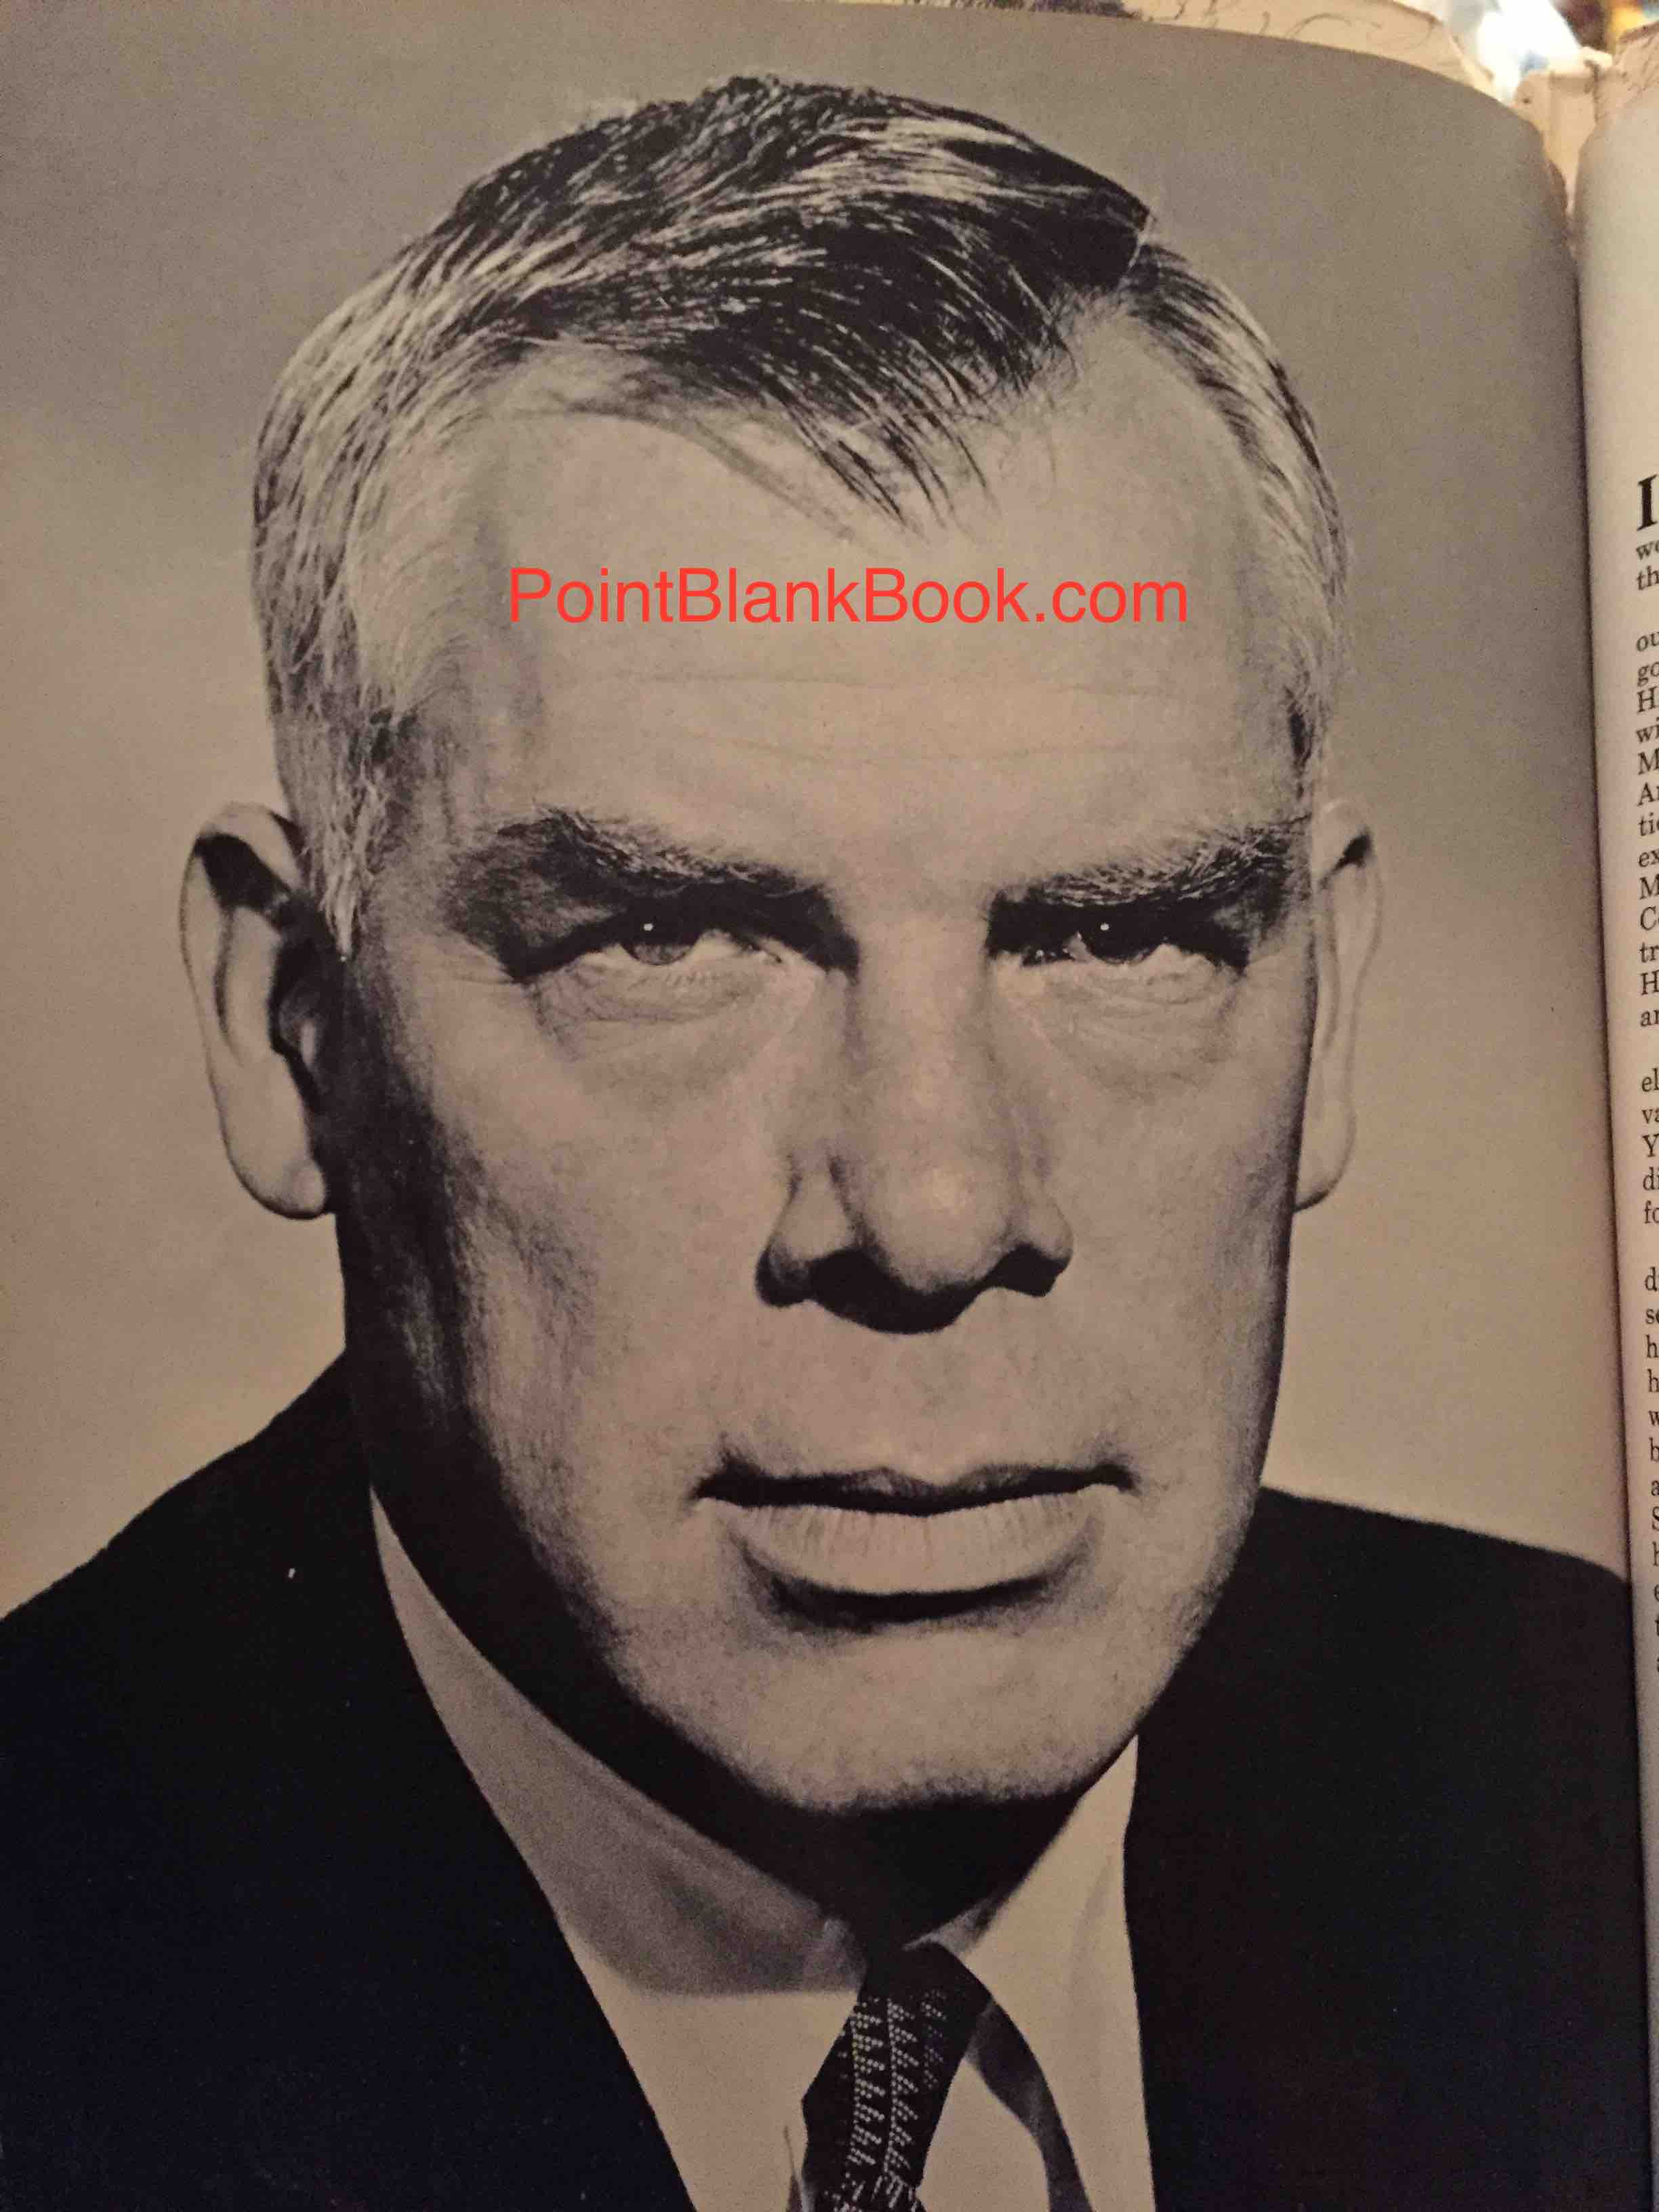 No, it's not Boris Karloff. It's Lee Marvin in a p.r. still from SHIP OF FOOLS (1965) used as an image for the film encyclopedia's entry on the actor.